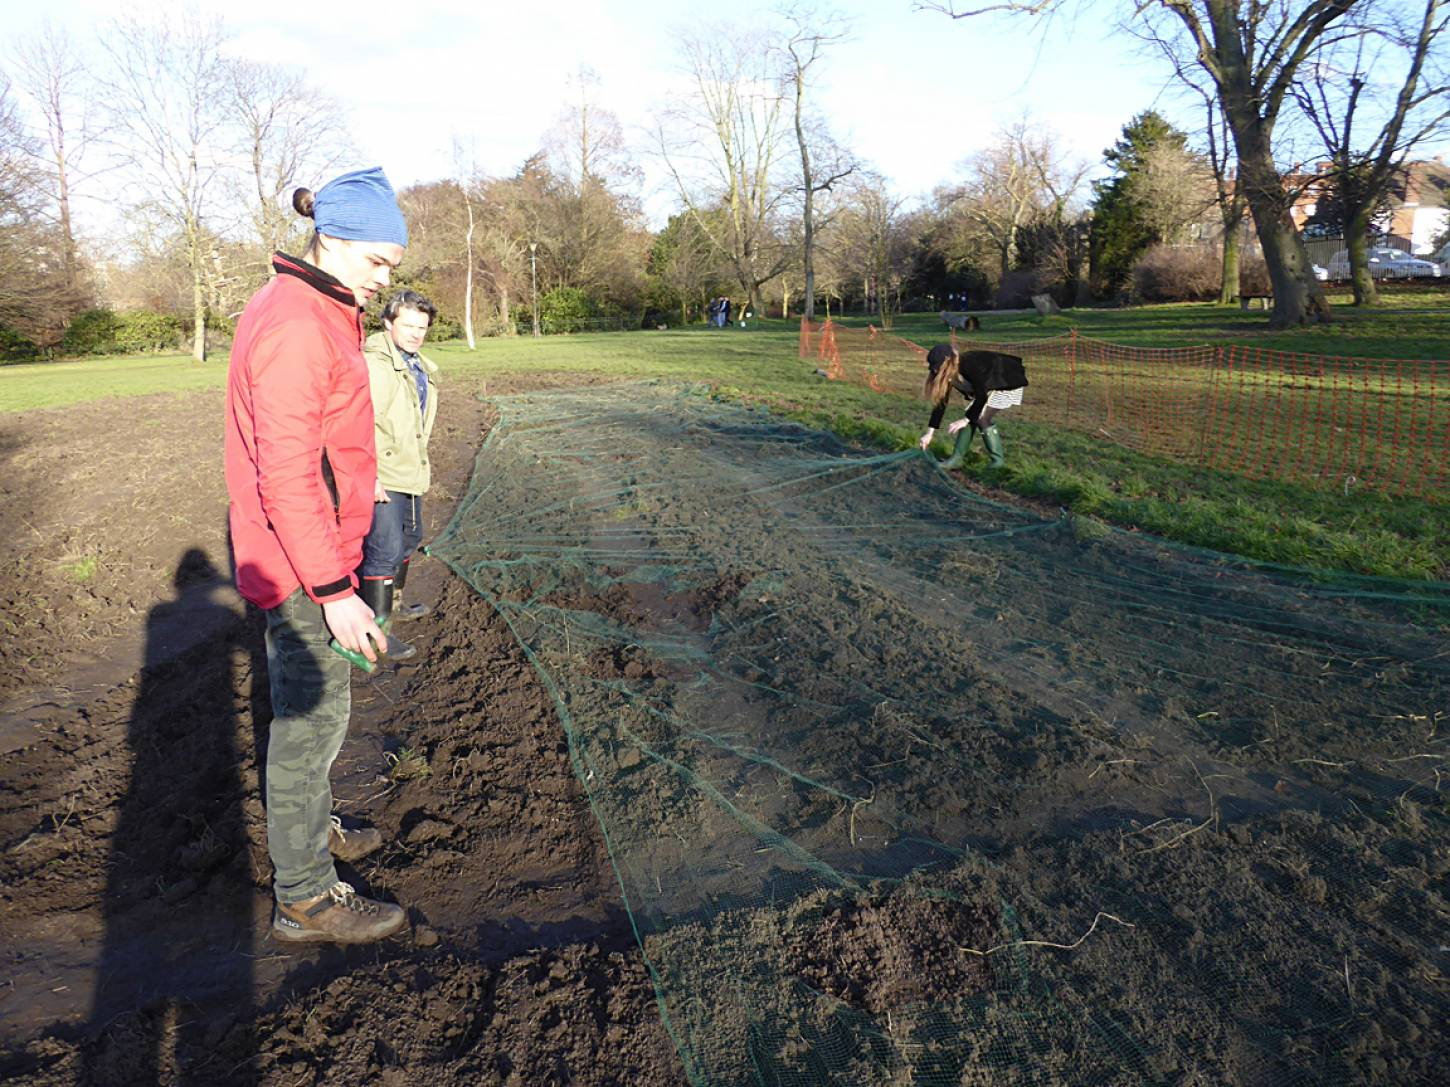 wheat goes in after harrowing on <a href='https://www.friendsofruskinpark.org.uk/' target='_blank'>Ruskin Park</a> - 4:38pm&nbsp;17<sup>th</sup>&nbsp;Feb.&nbsp;'18